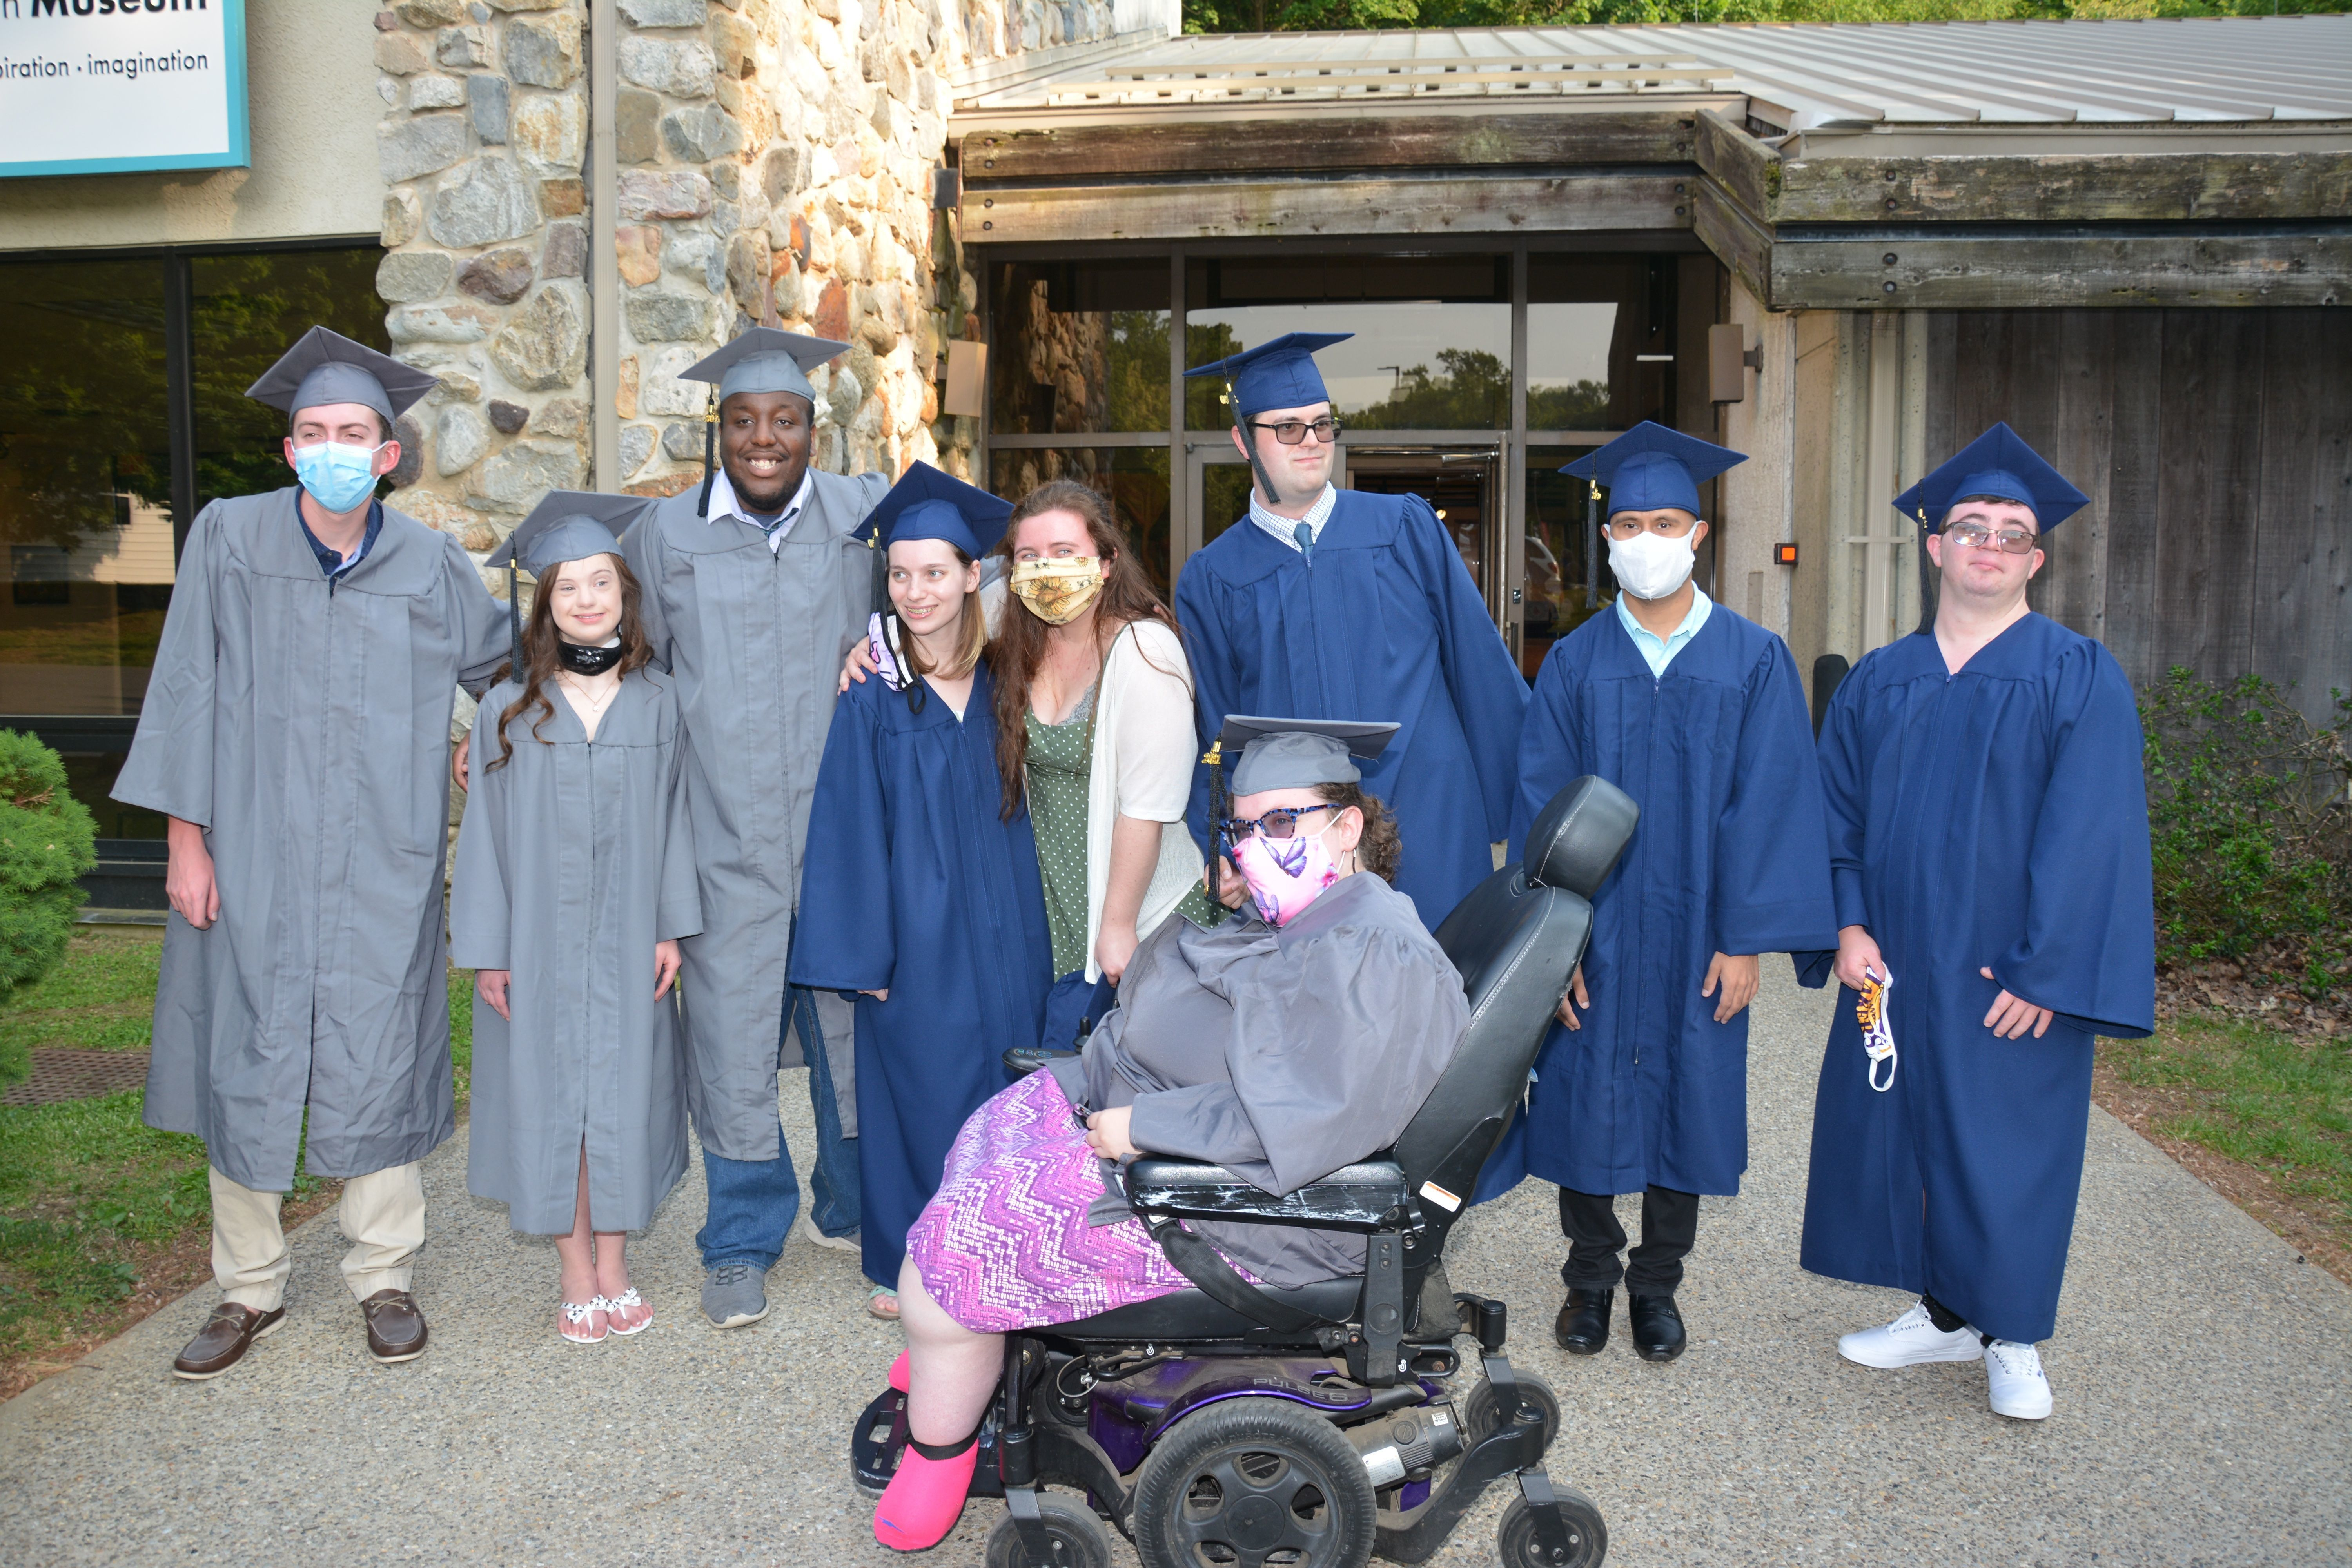 2020-2021 Kach Graduates stand in cap and gown on graduation day.